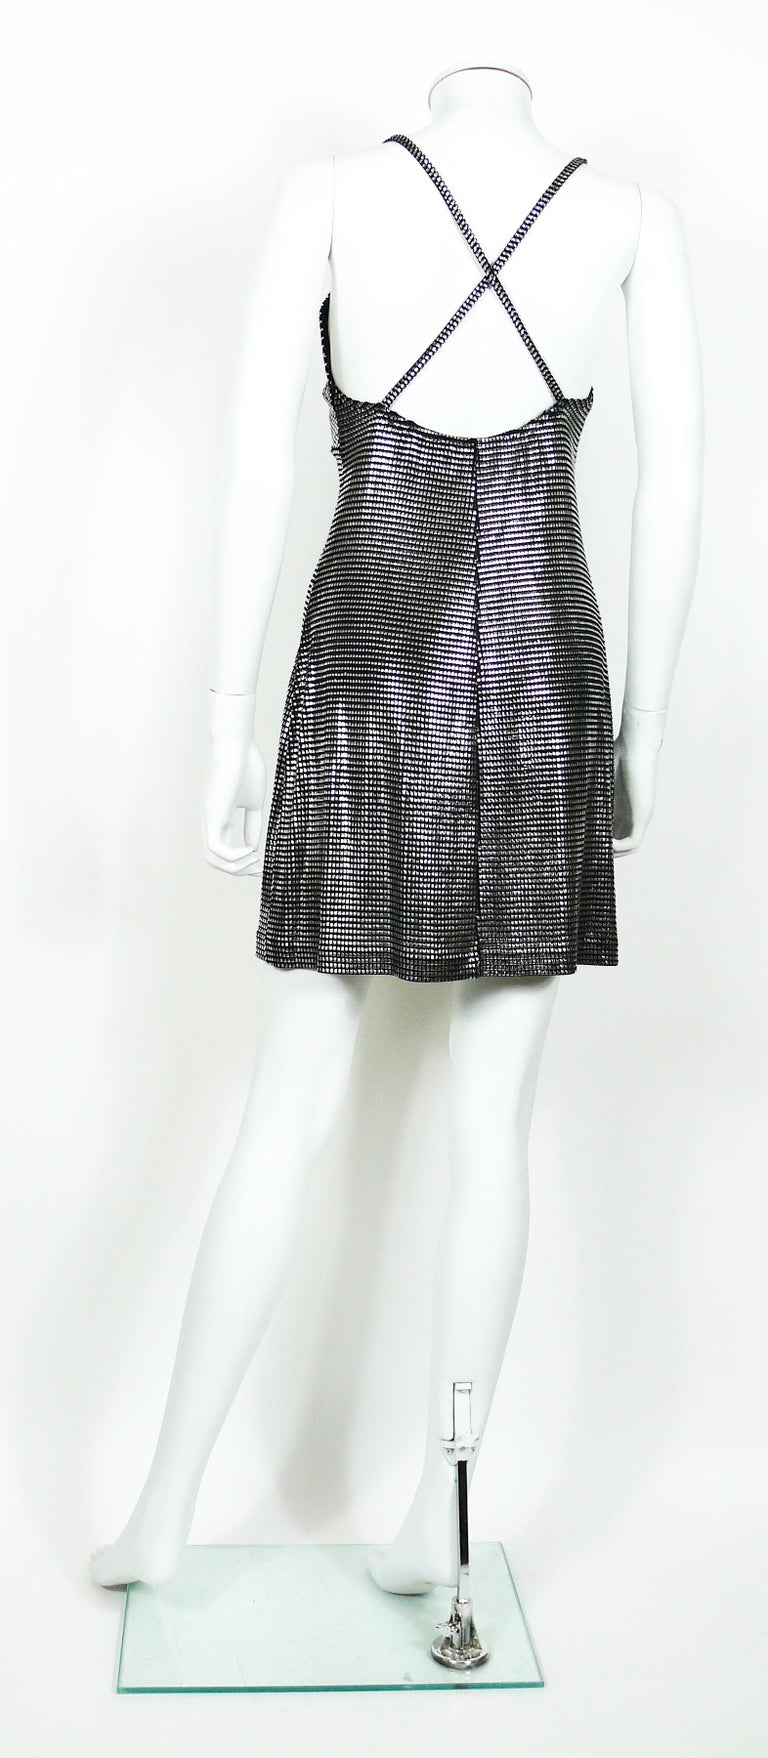 Paco Rabanne Silver Foil Grid Mini Dress In Excellent Condition For Sale In French Riviera, Cote d'Azur